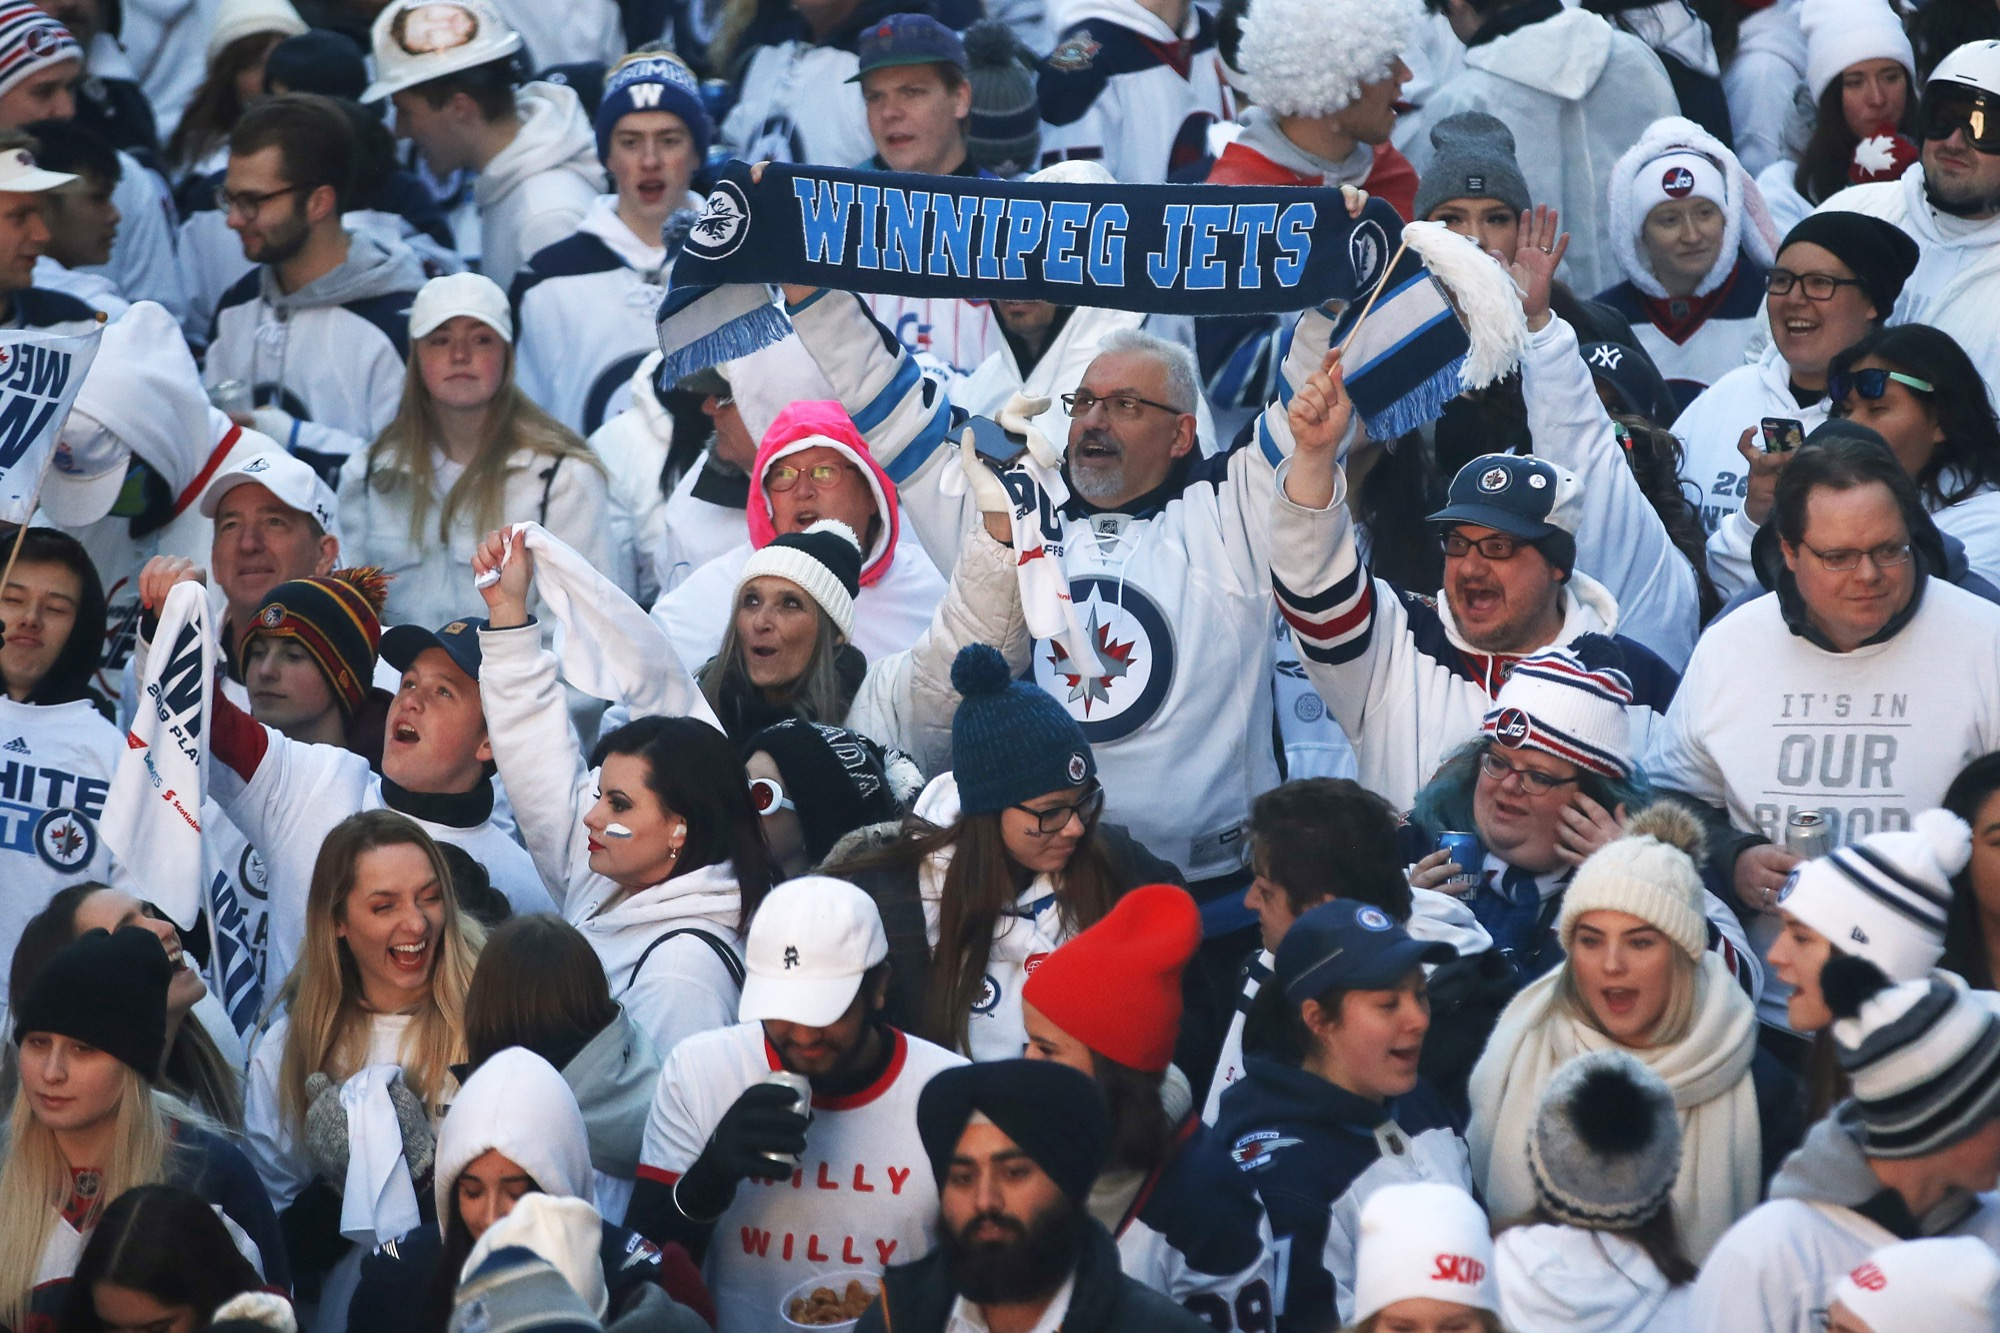 Winnipeg Jets' fans get warmed up at the Whiteout Street Party prior to the second NHL playoff game against the St. Louis Blues during in Winnipeg on Friday, April 12.